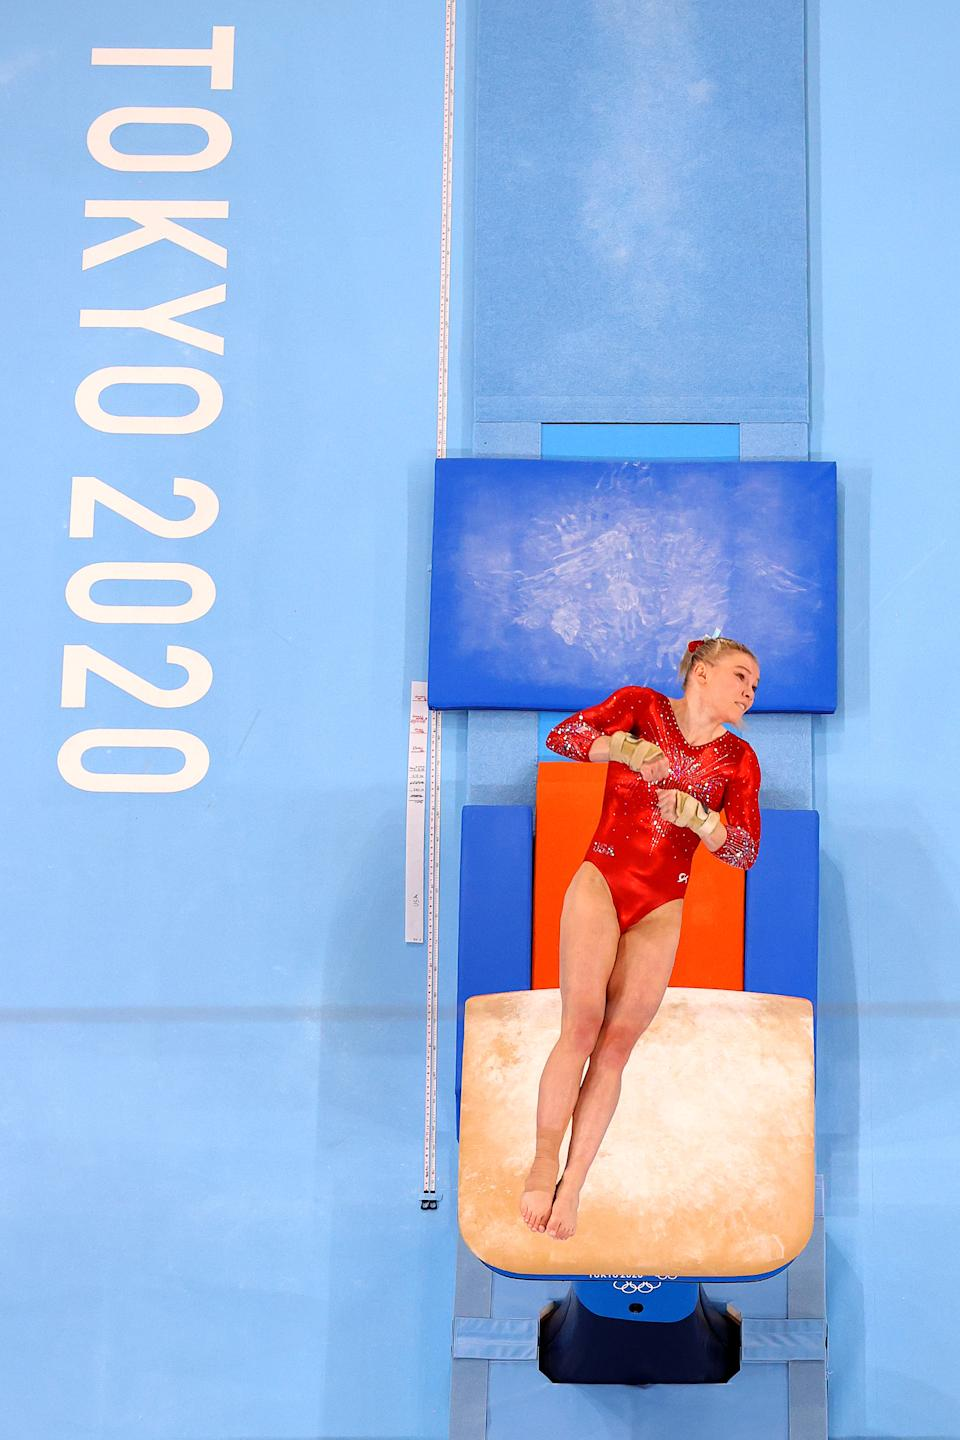 <p>Carey deferred a 2018 enrollment at Oregon State to train for the Tokyo Olympics. However, once the games were postponed, she began taking classes for the 2020 school year but deferred competing for the Beavers gymnastics team until after Tokyo.</p>